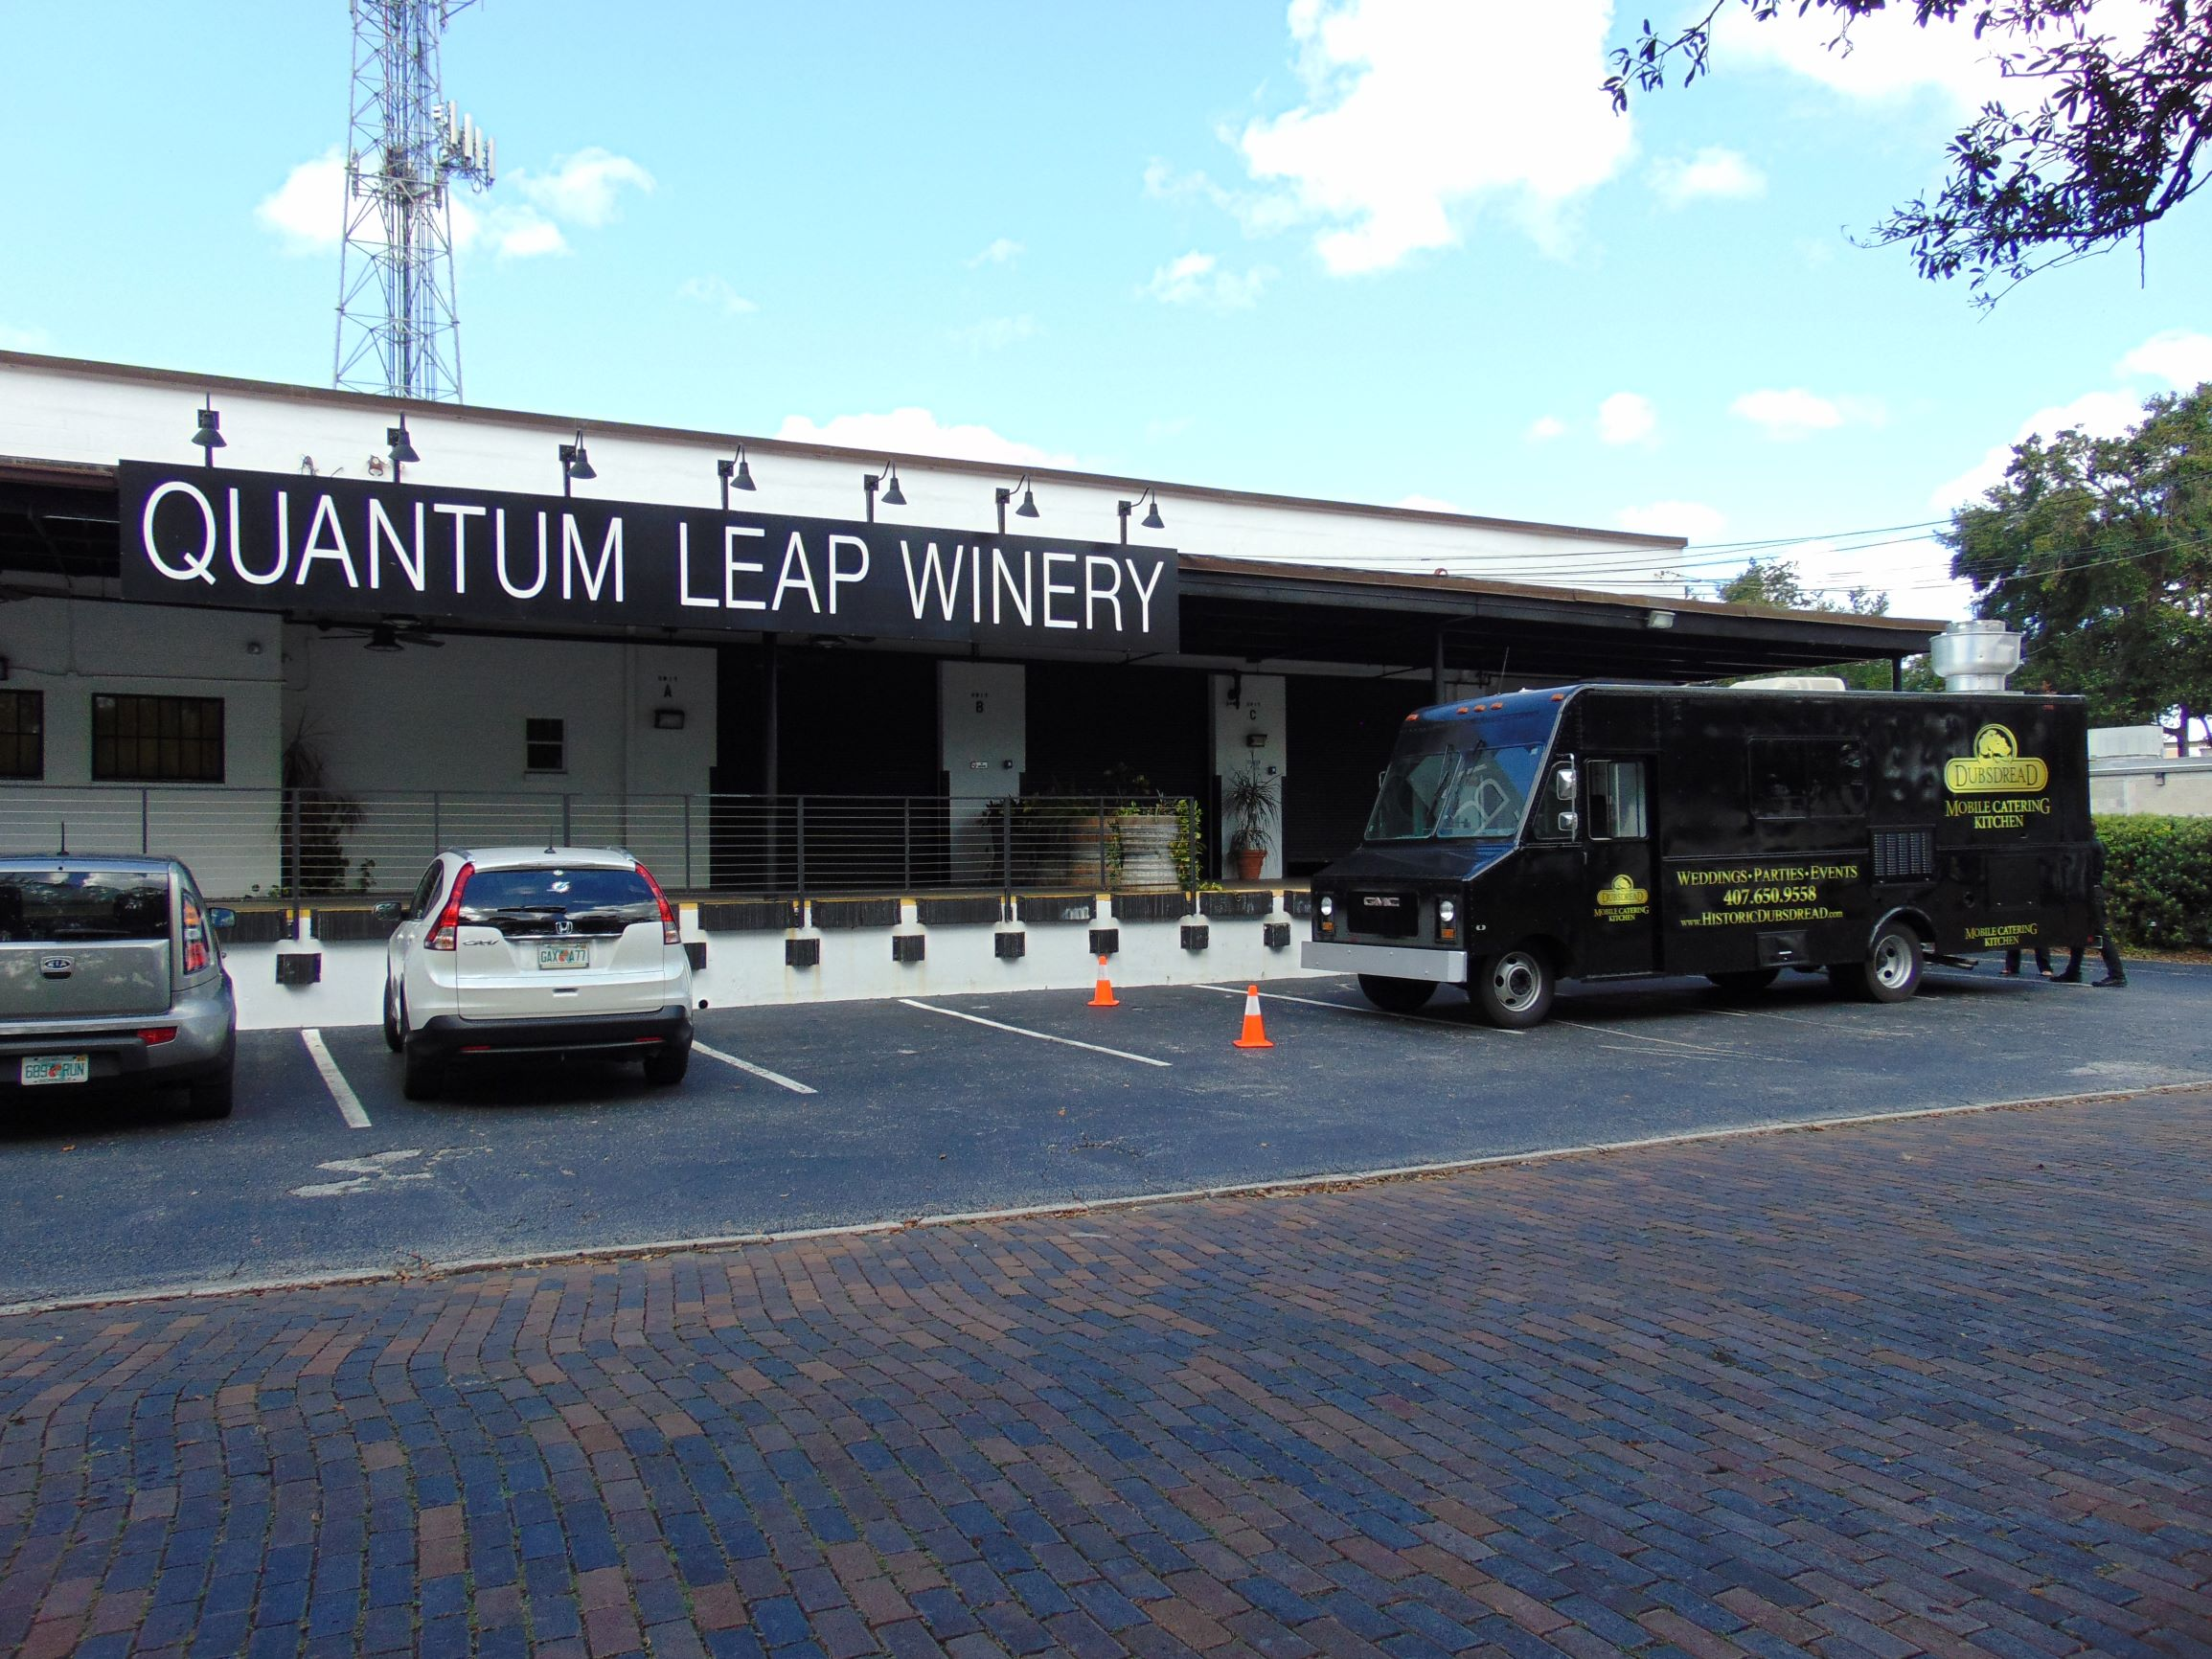 wide shot of food truck in front of quantum leap winery